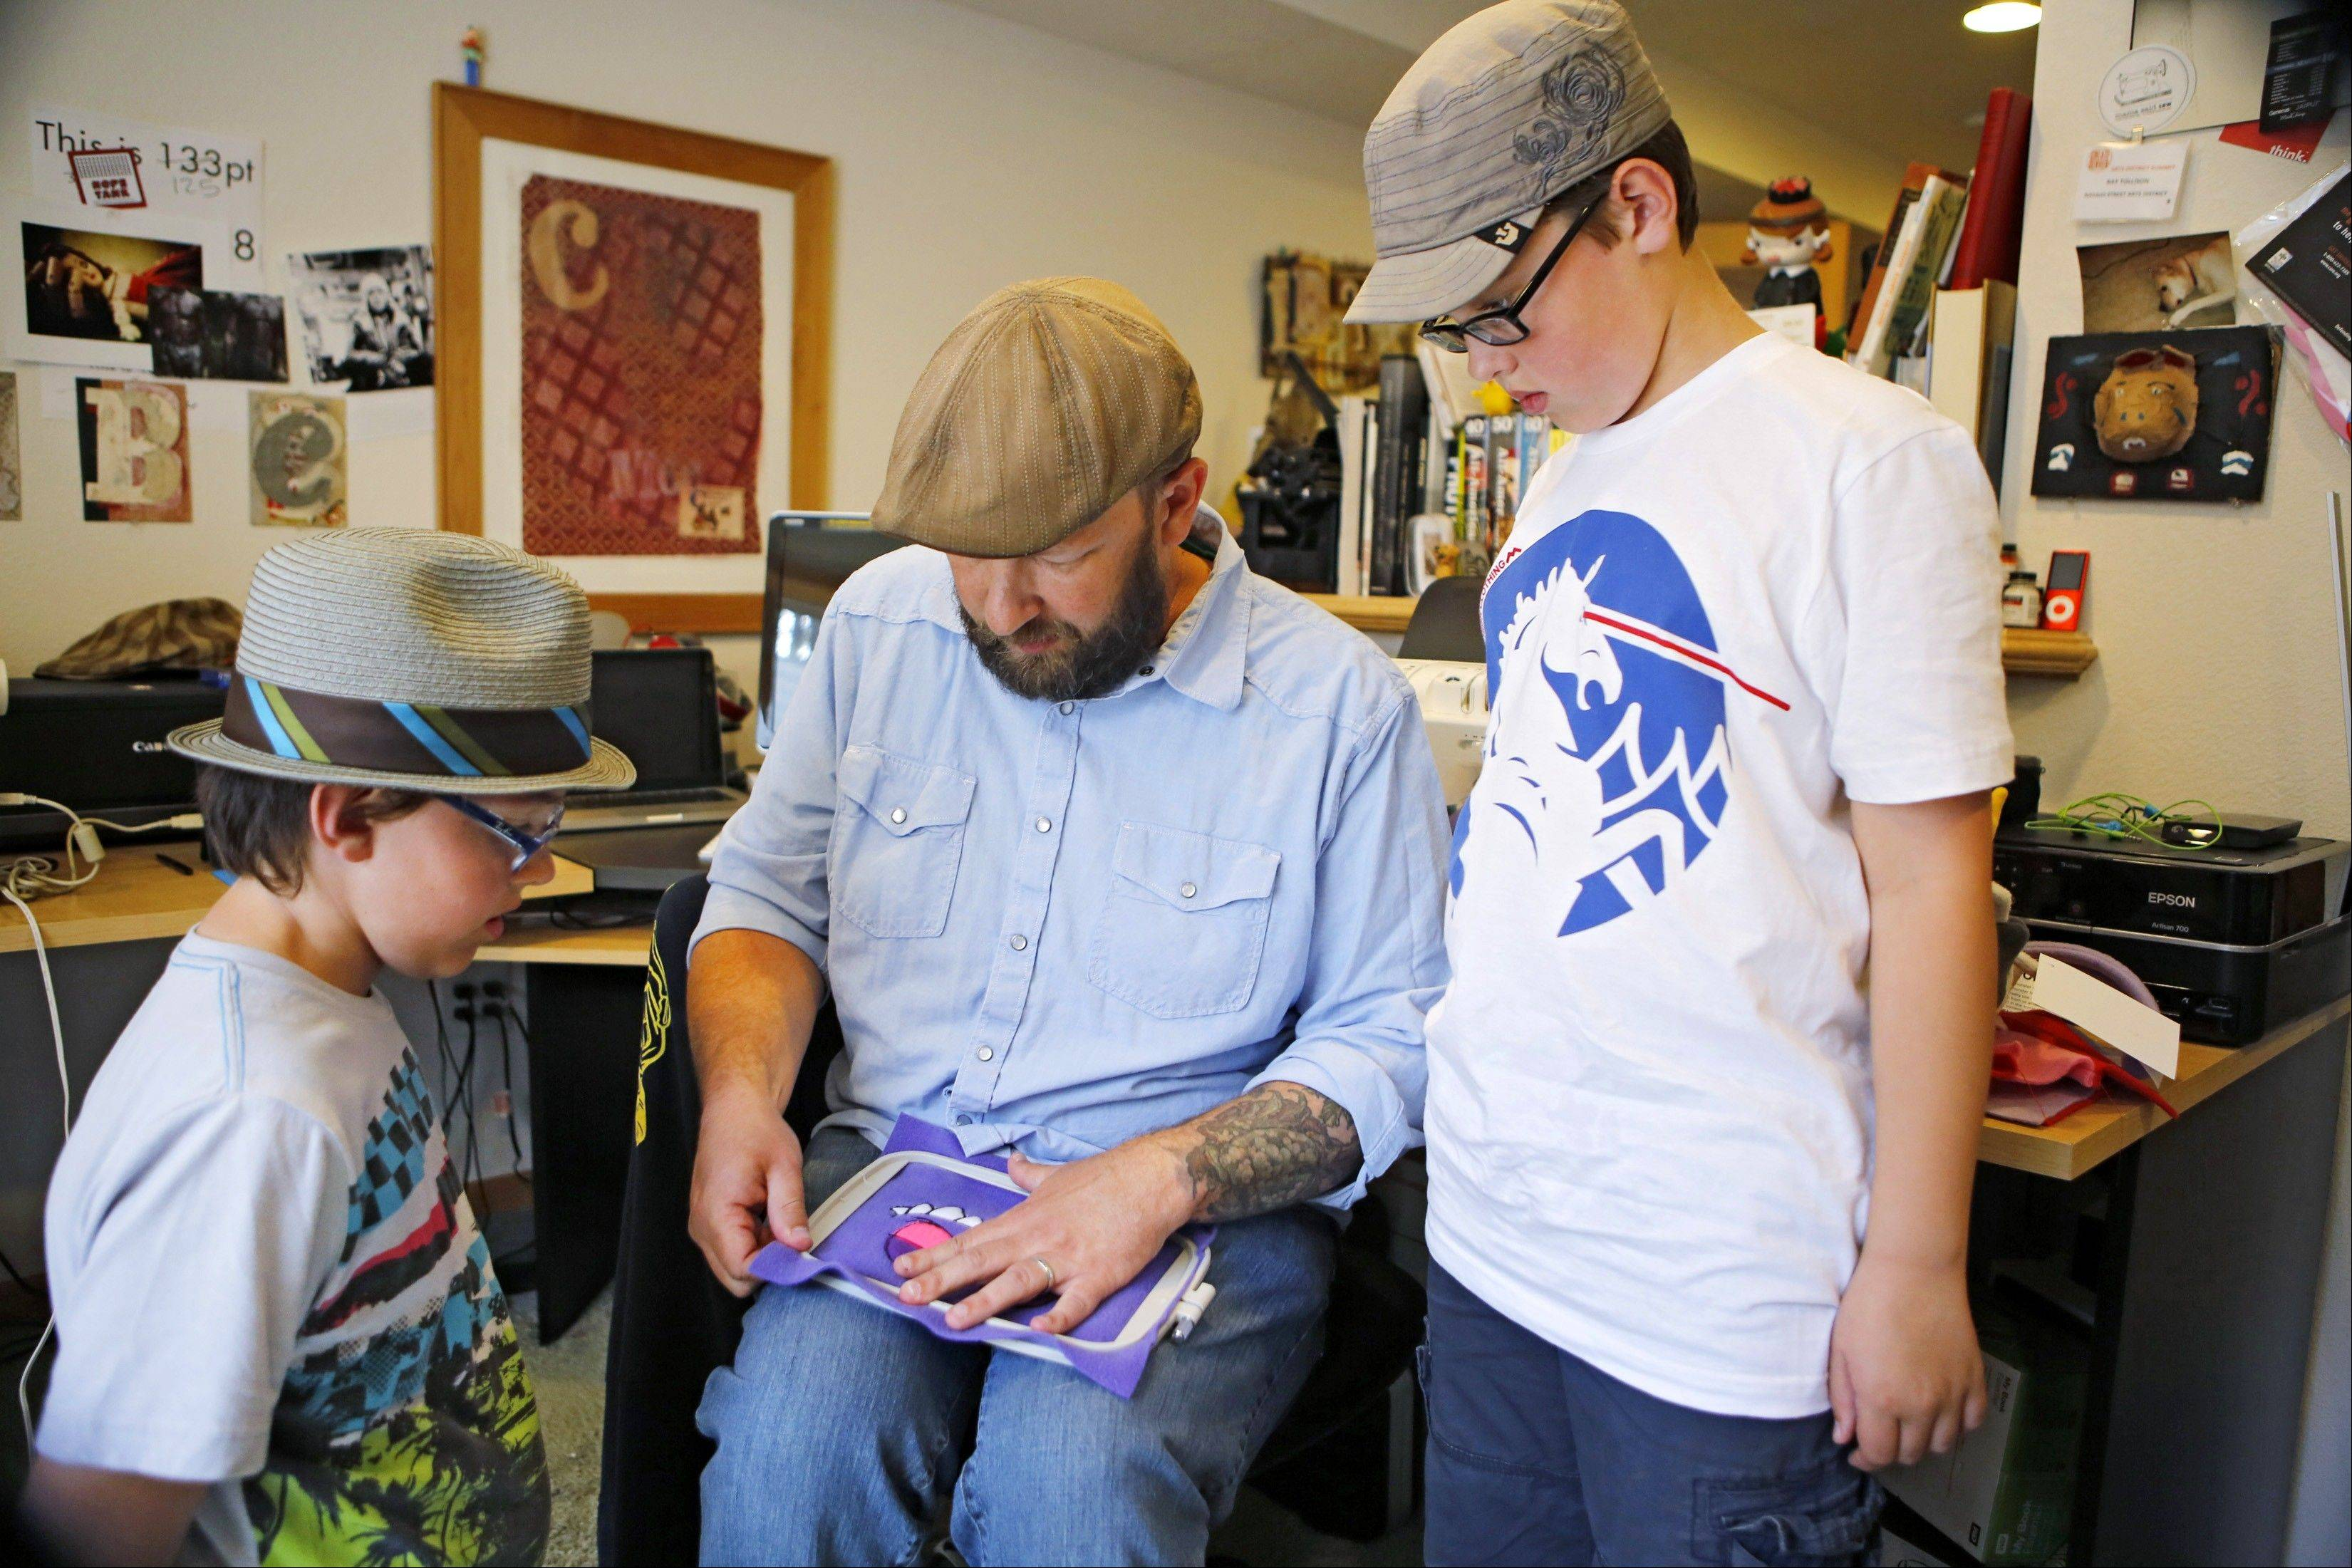 Ray Tollison inserts material into a frame for sewing, as sons Sam, left, and Ben look on at their home in Fort Collins, Colo. The Tollisons launched Monster to Love, a company that makes plush monster toys.